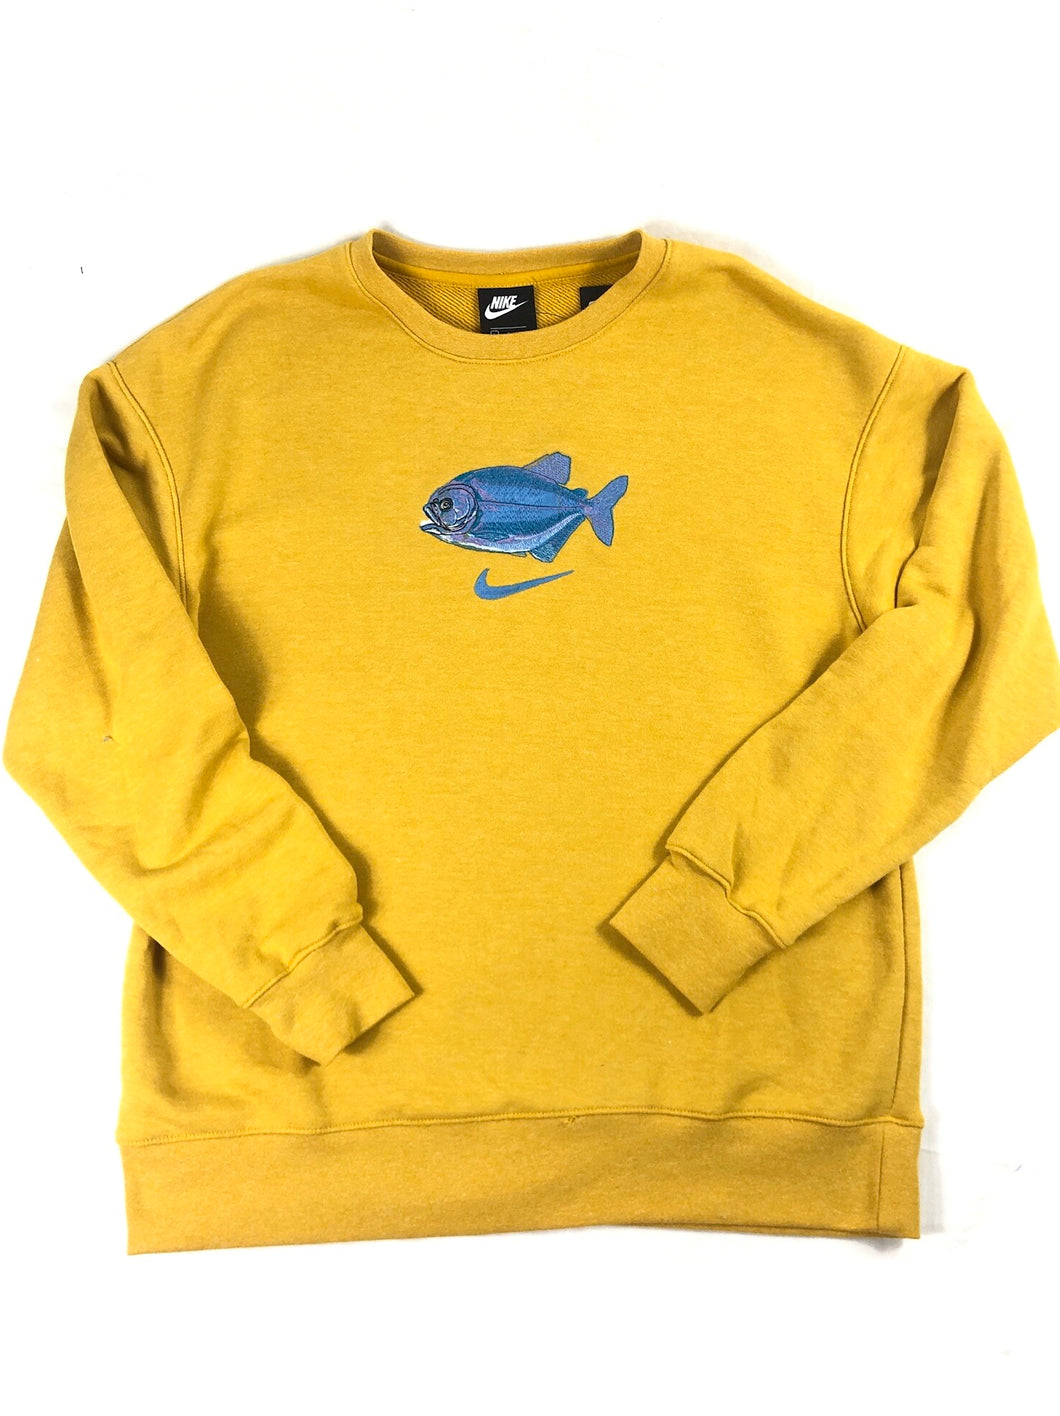 Nike Dangerous Fish Sweatshirt